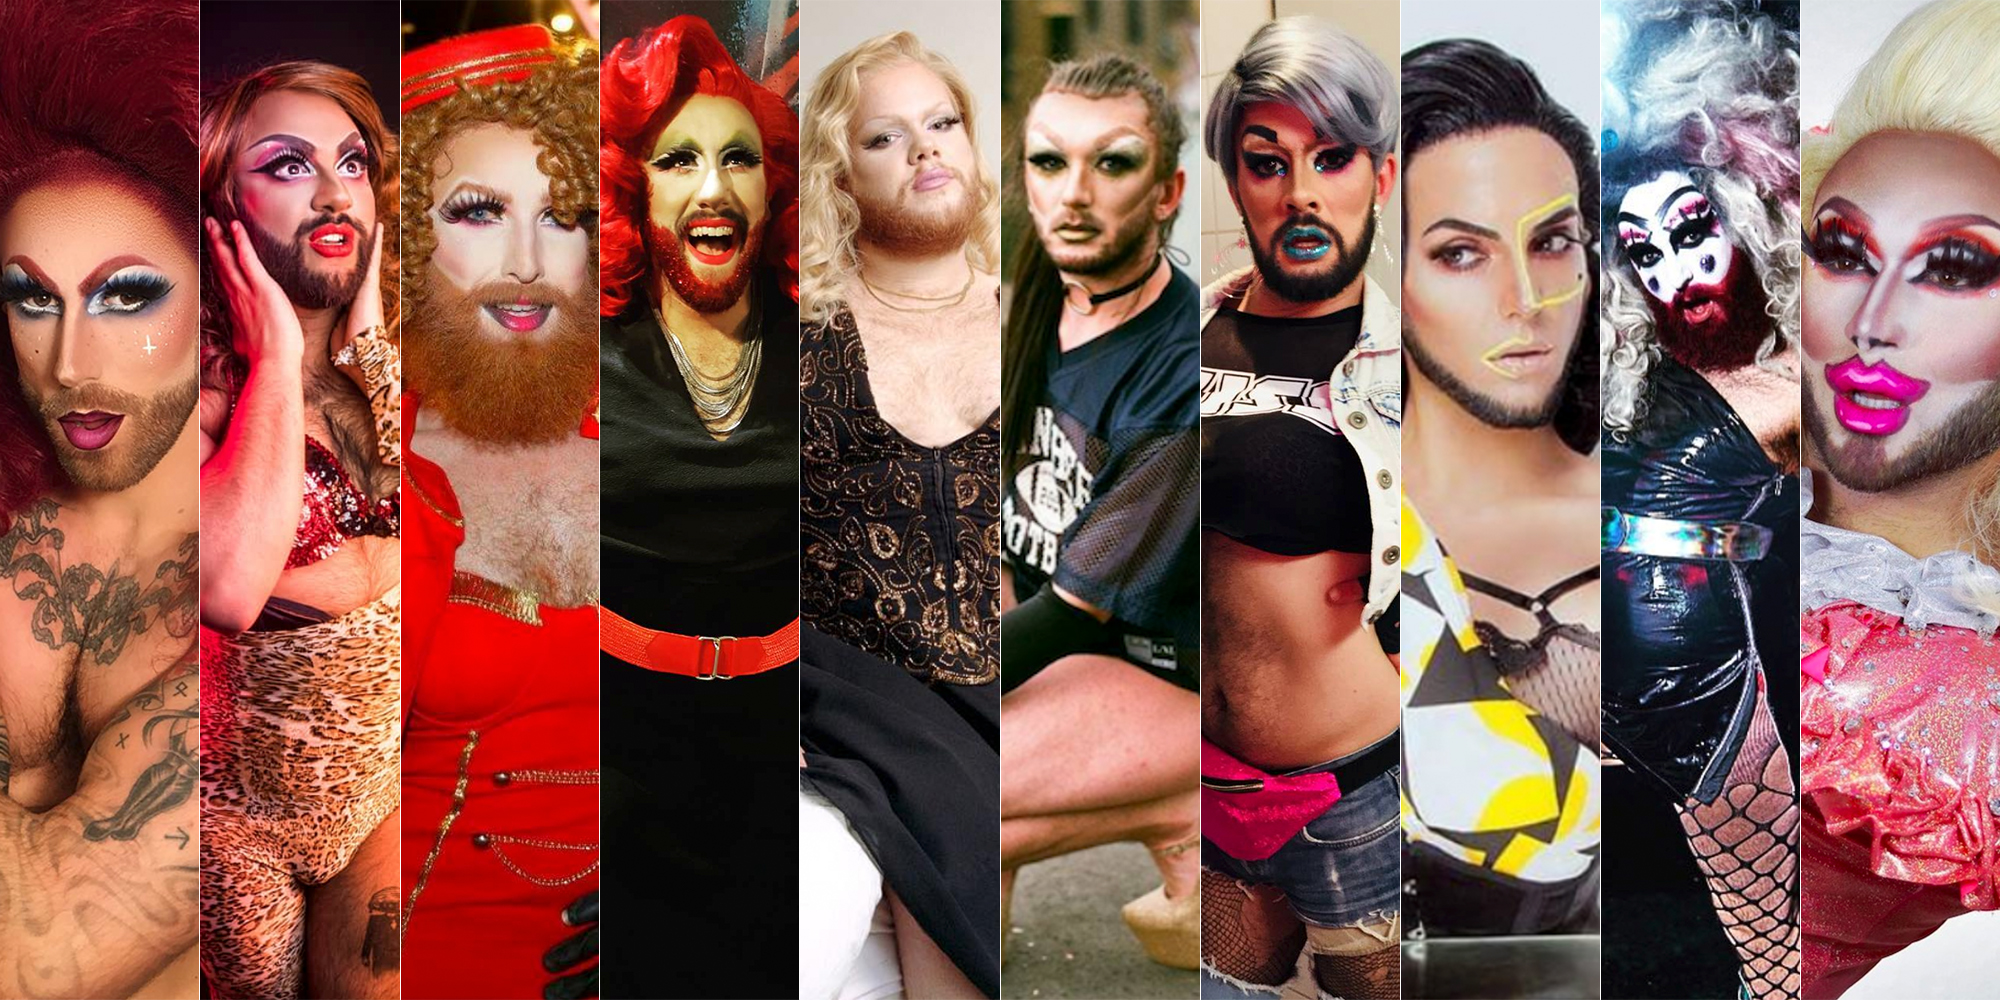 Drag de barba: as 10 drags barbudas mais babadeiras da Europa